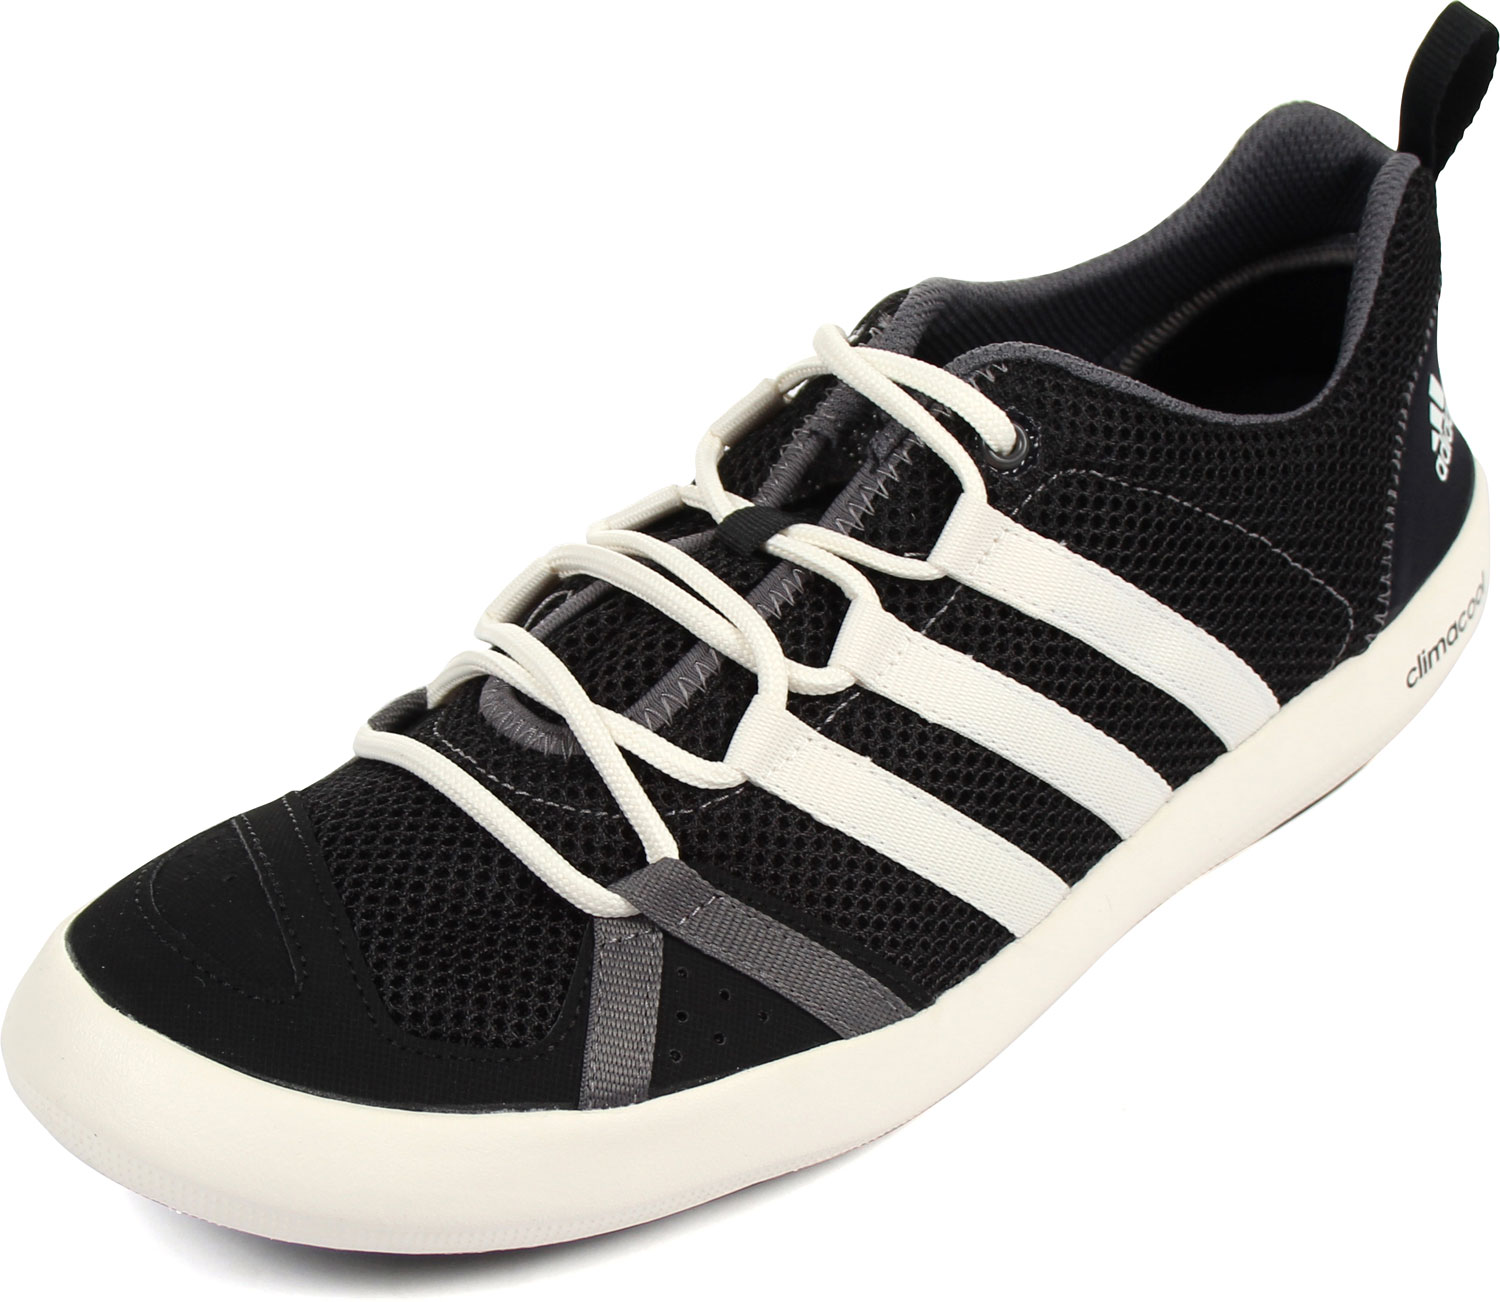 adidas mens climacool boat lace water shoes. Black Bedroom Furniture Sets. Home Design Ideas